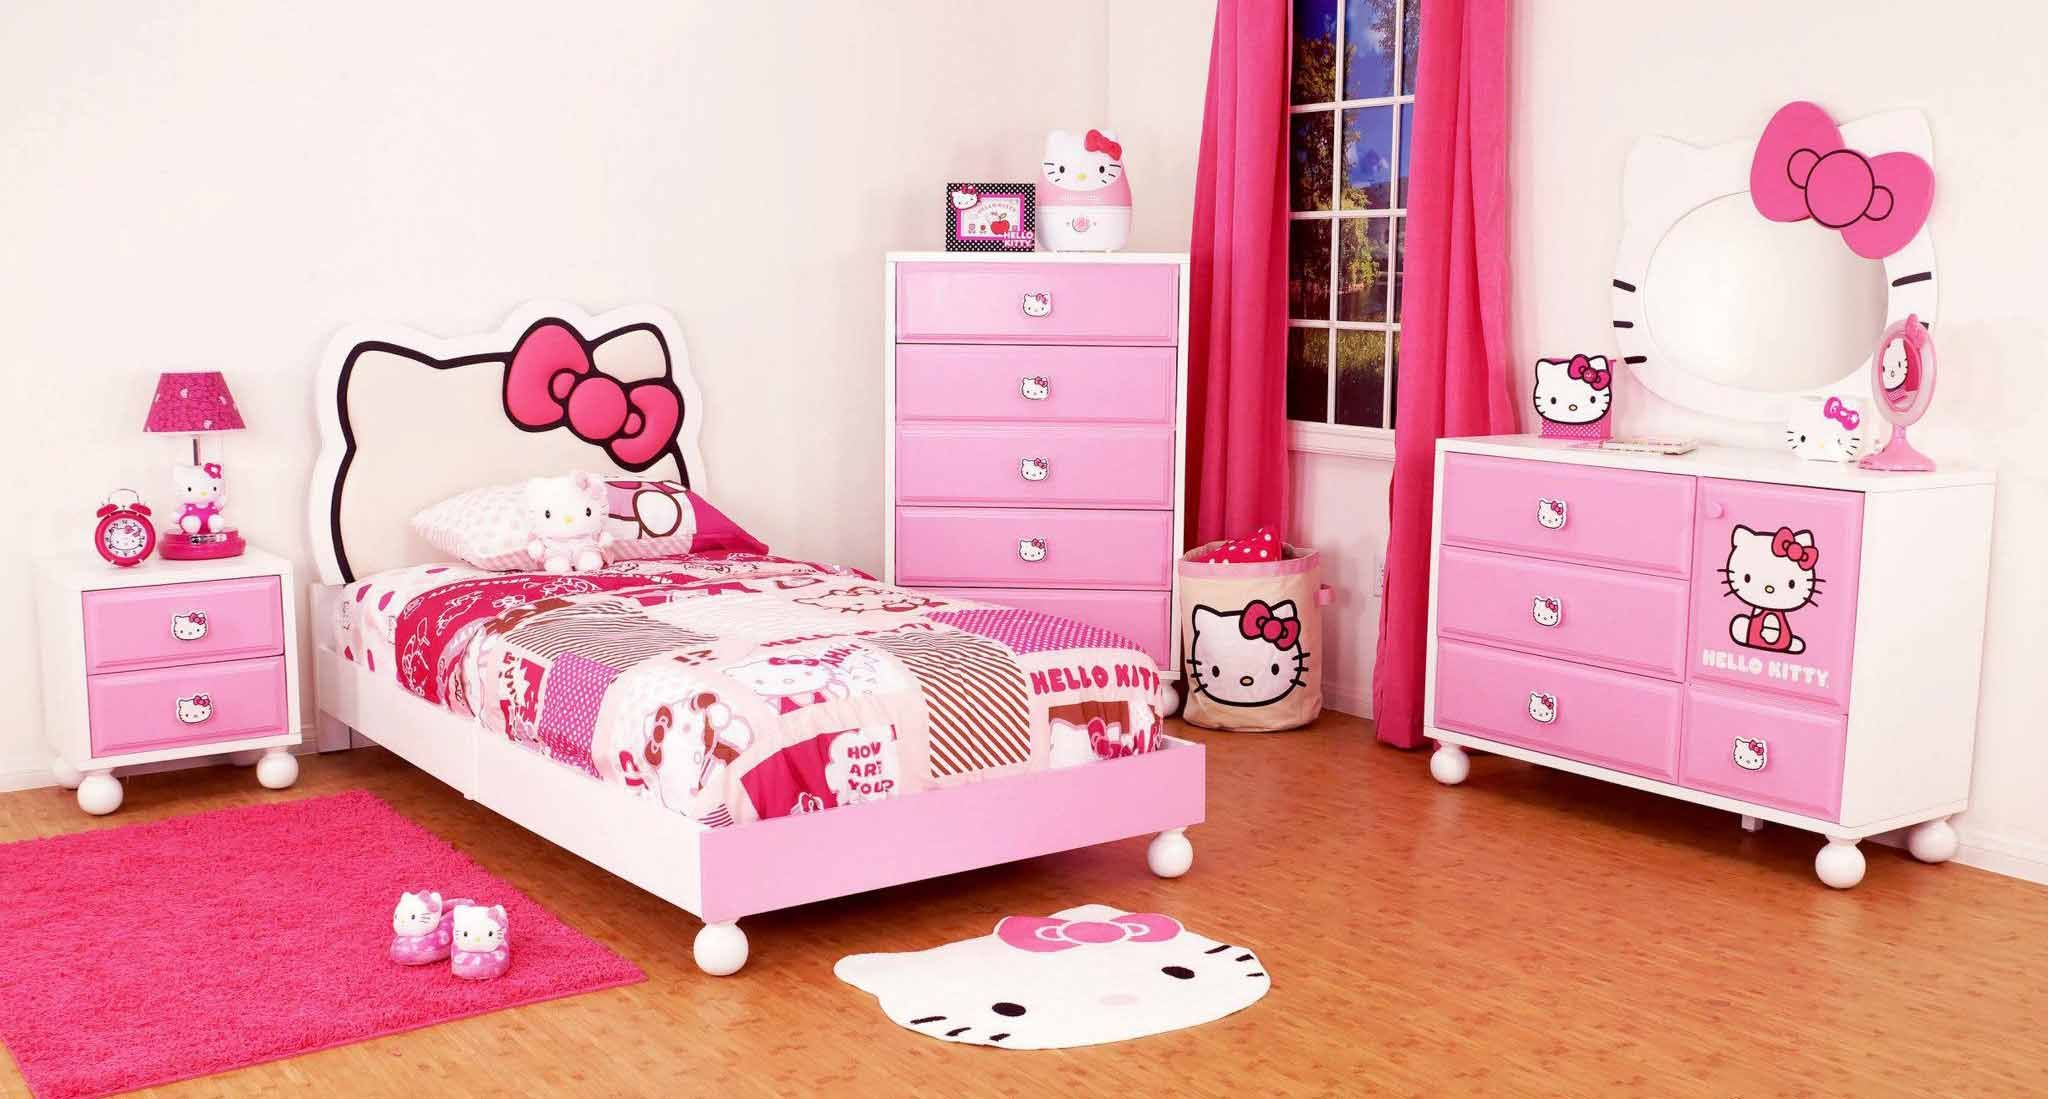 25 Adorable Hello Kitty Bedroom Decoration Ideas For Girls Hello